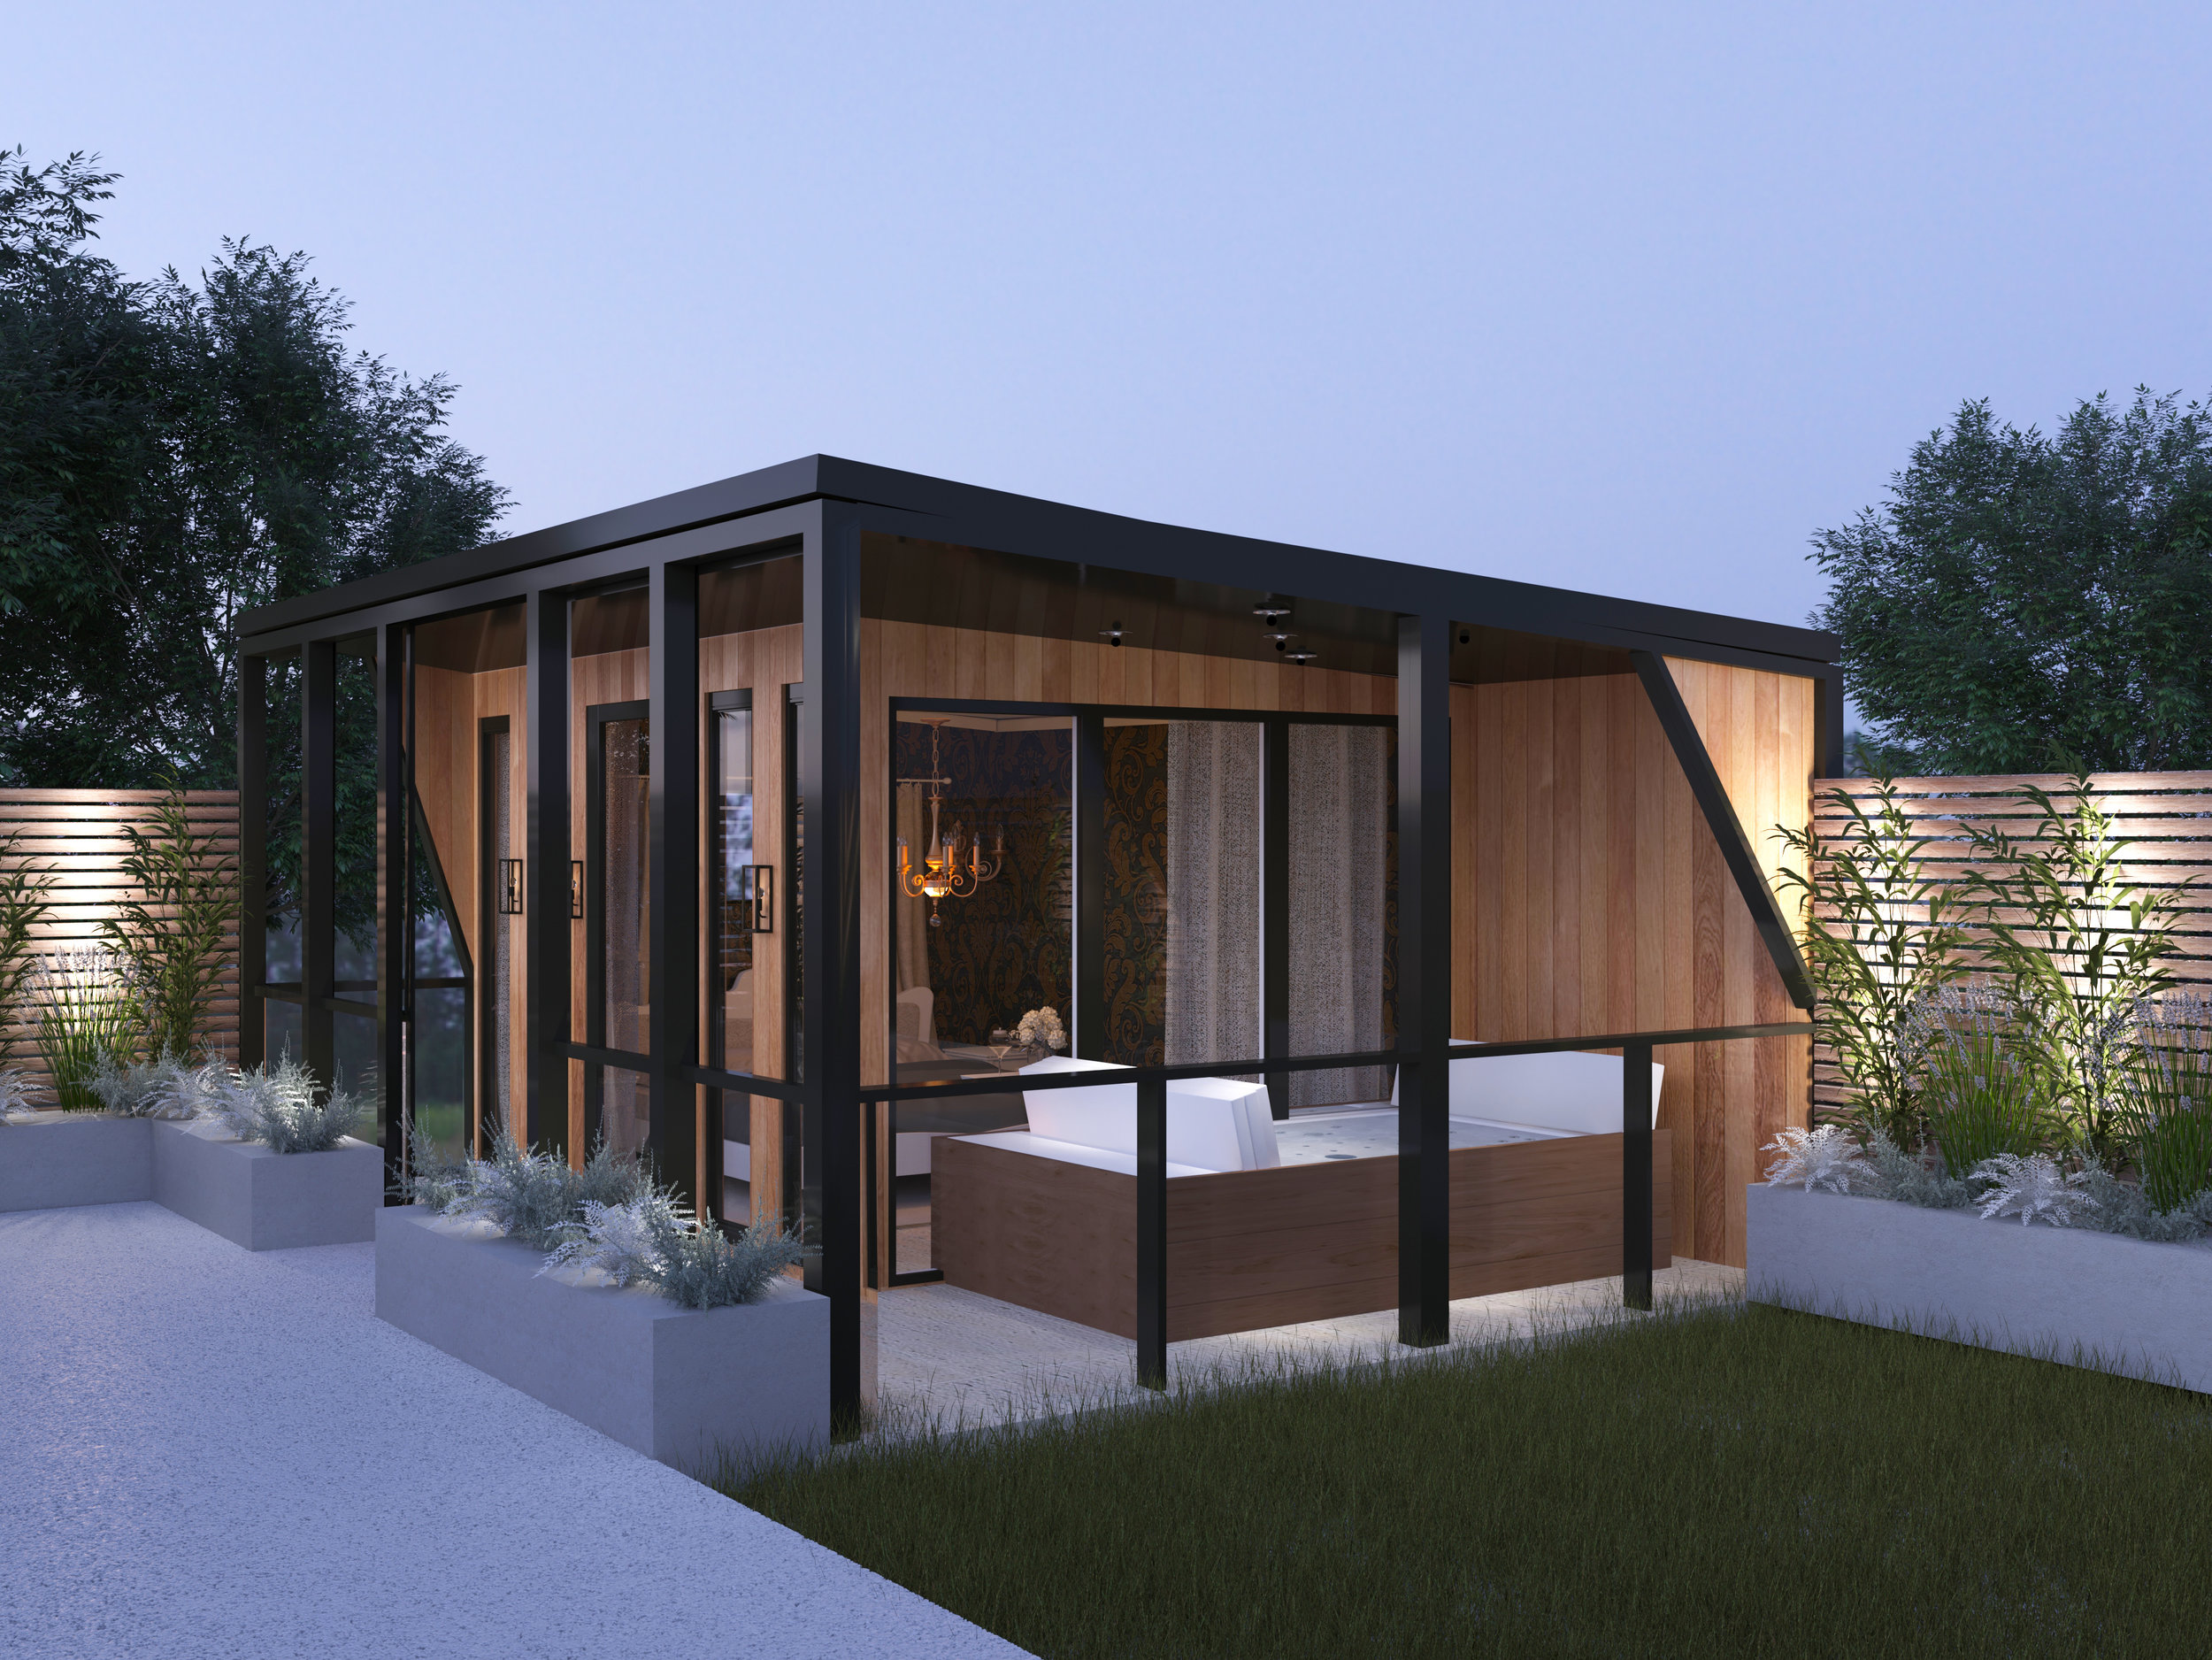 Luxury Holiday Let - Designed on our stunning Aspen studio, a beautiful studio-style luxury holiday let, complete with under-floor heating & bi-folding doors.